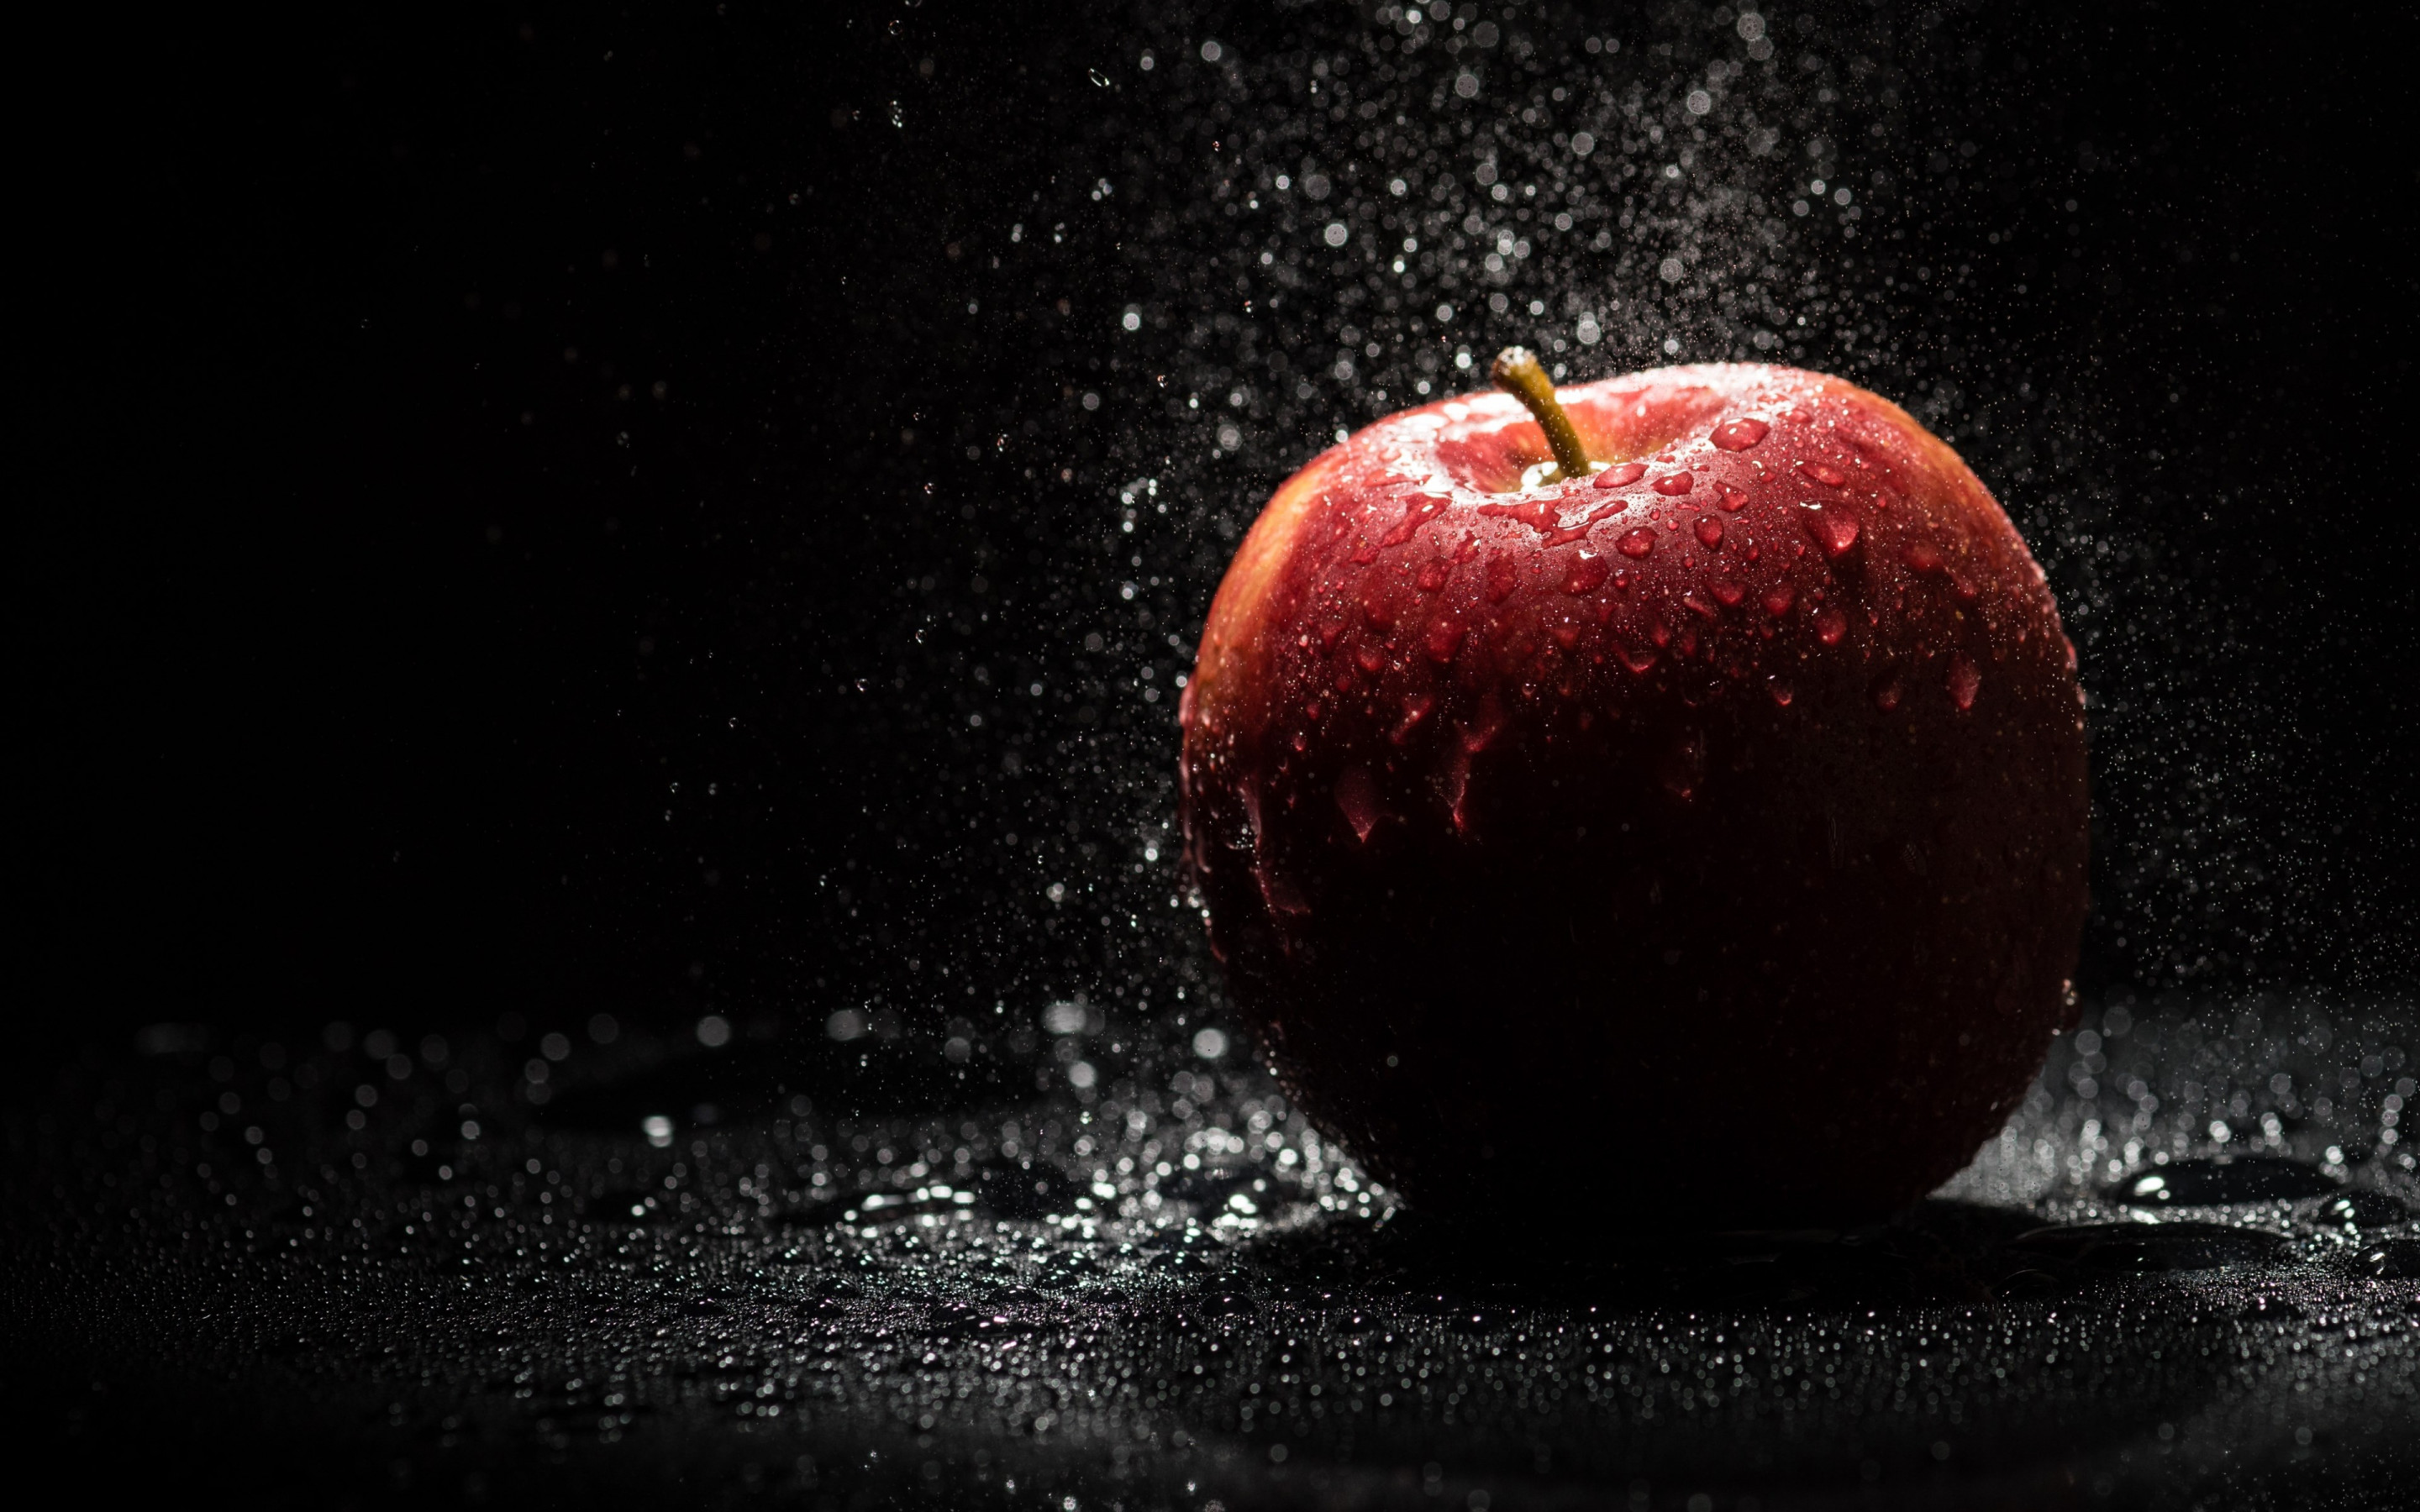 The apple, natural red apple | 2880x1800 wallpaper